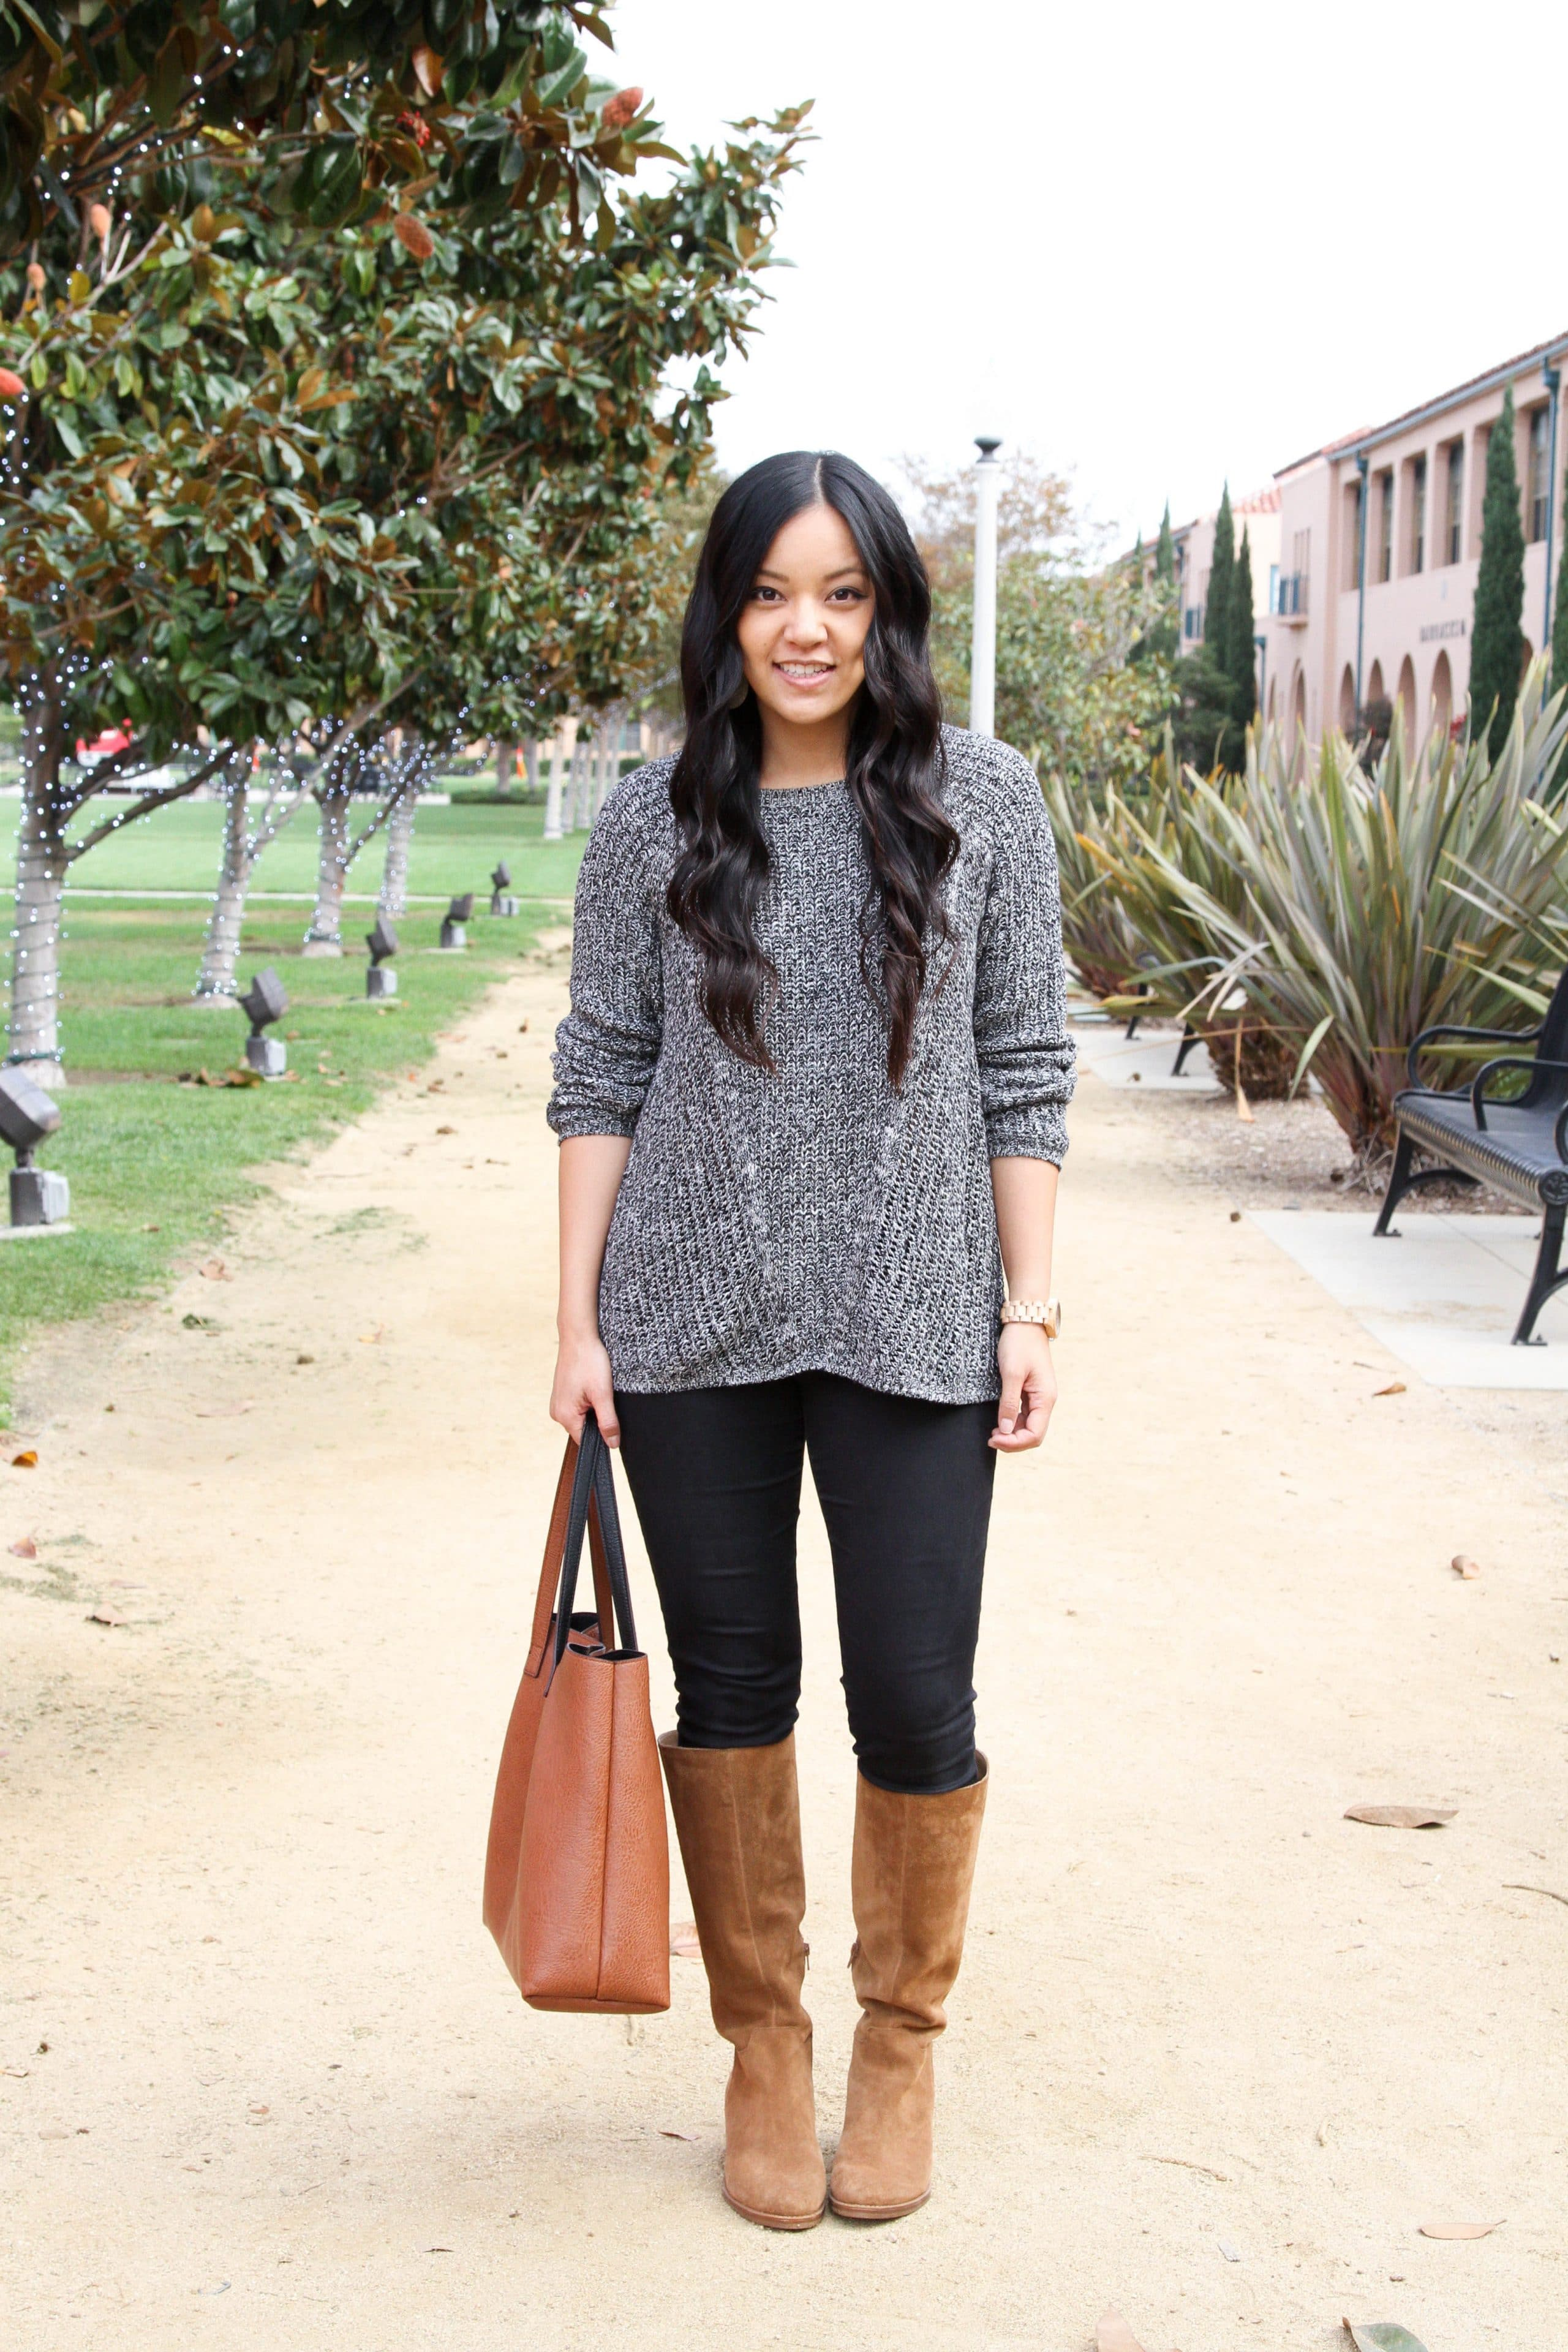 a969c54076 Grey Marled Sweater Outfit Tall Suede Boots 01 - Putting Me Together